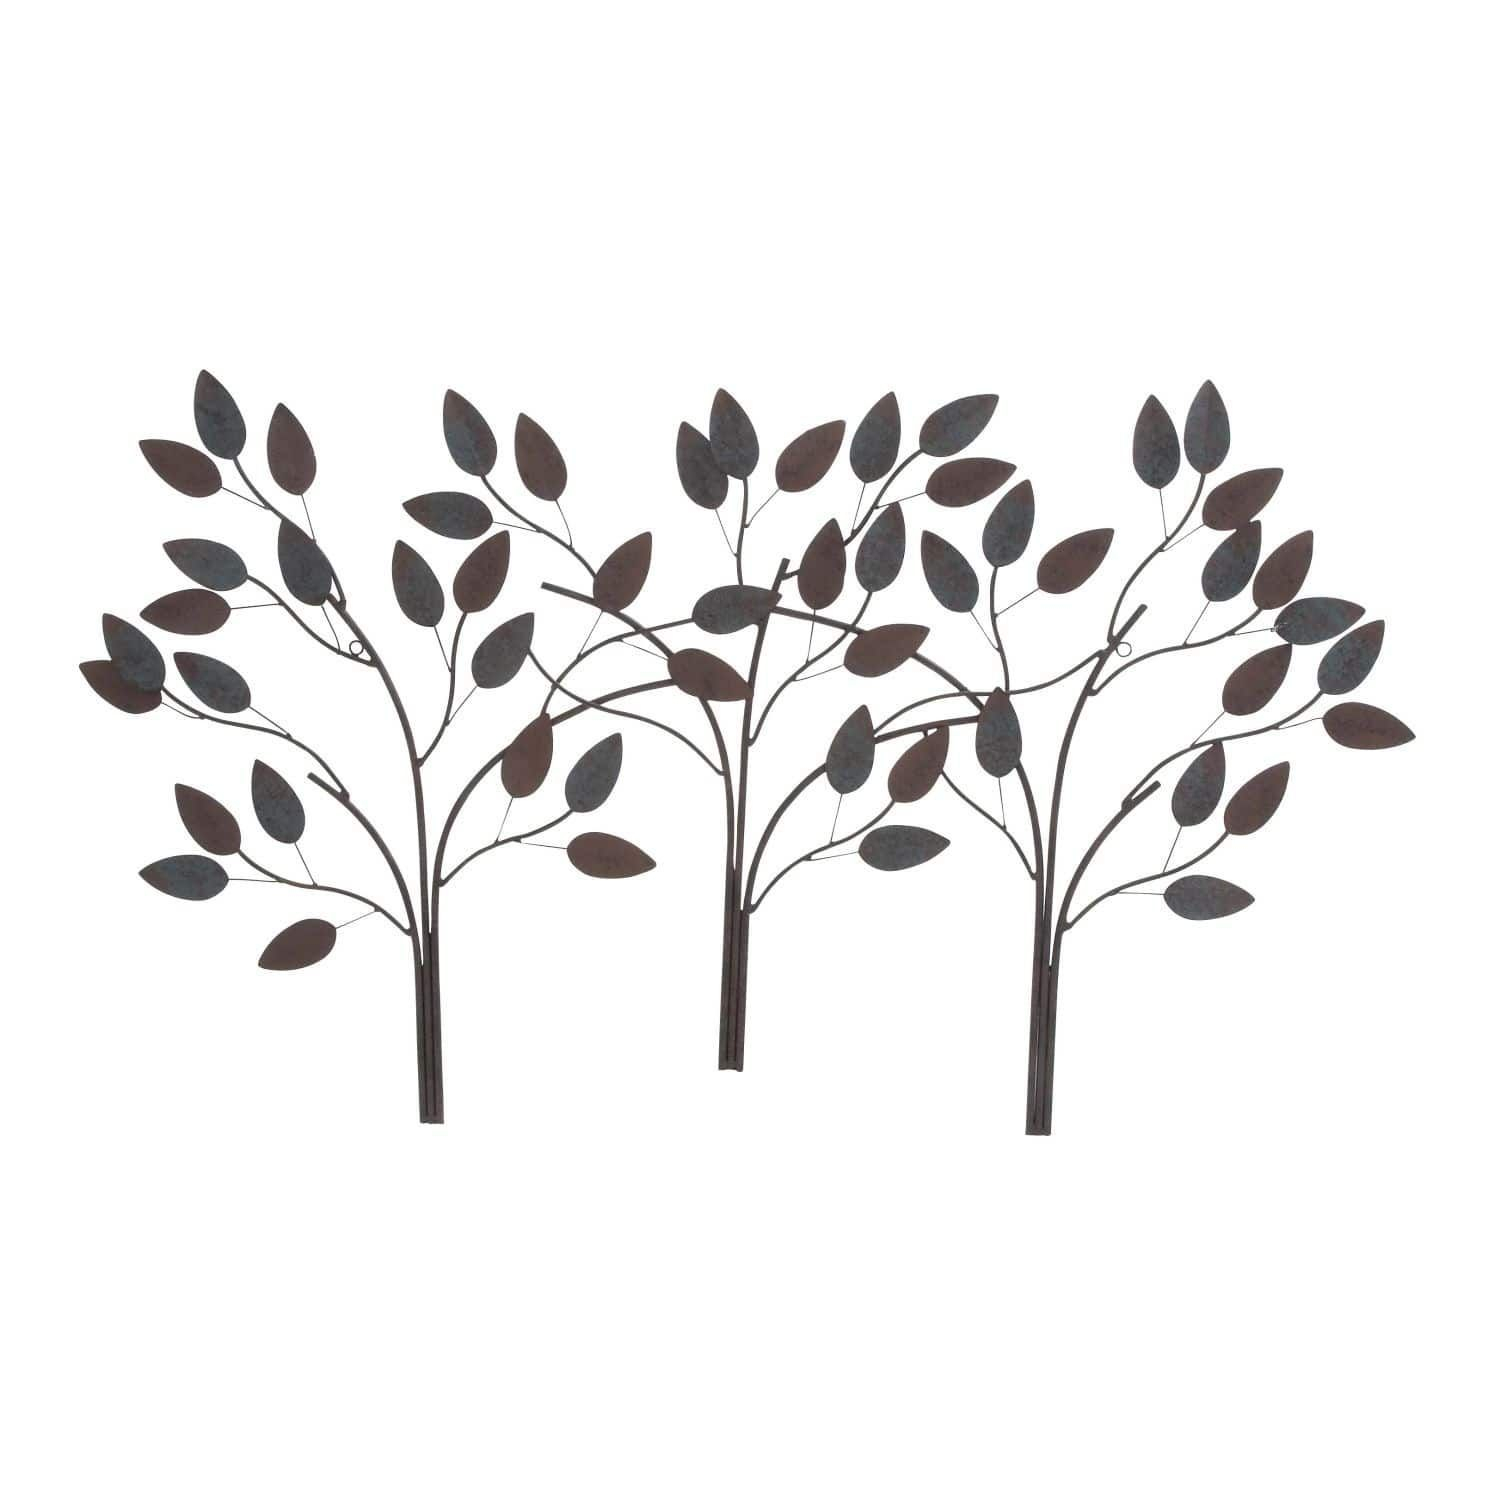 Studio 350 Metal Leaf Wall Decor 48 Inches Wide, 27 Inches High Within Well Liked Desford Leaf Wall Decor By Charlton Home (Gallery 8 of 20)